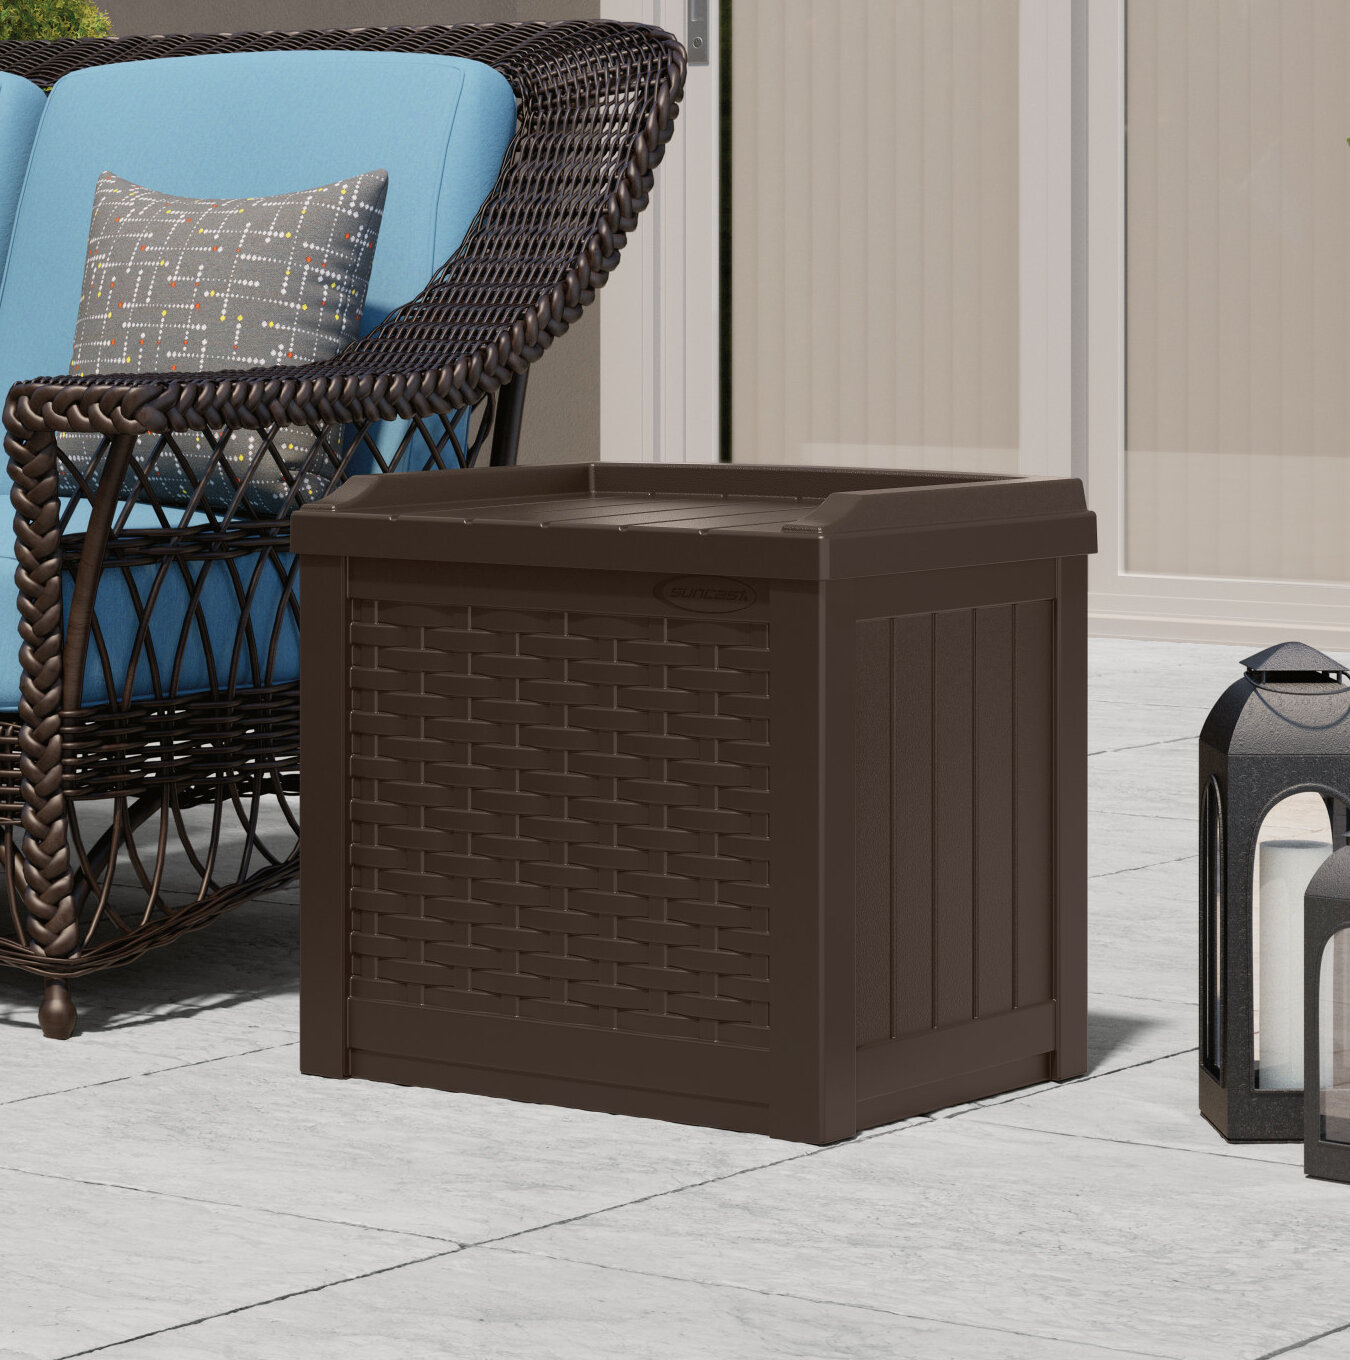 Admirable Suncast Wicker 22 Gallon Resin Plastic Storage Bench Ibusinesslaw Wood Chair Design Ideas Ibusinesslaworg